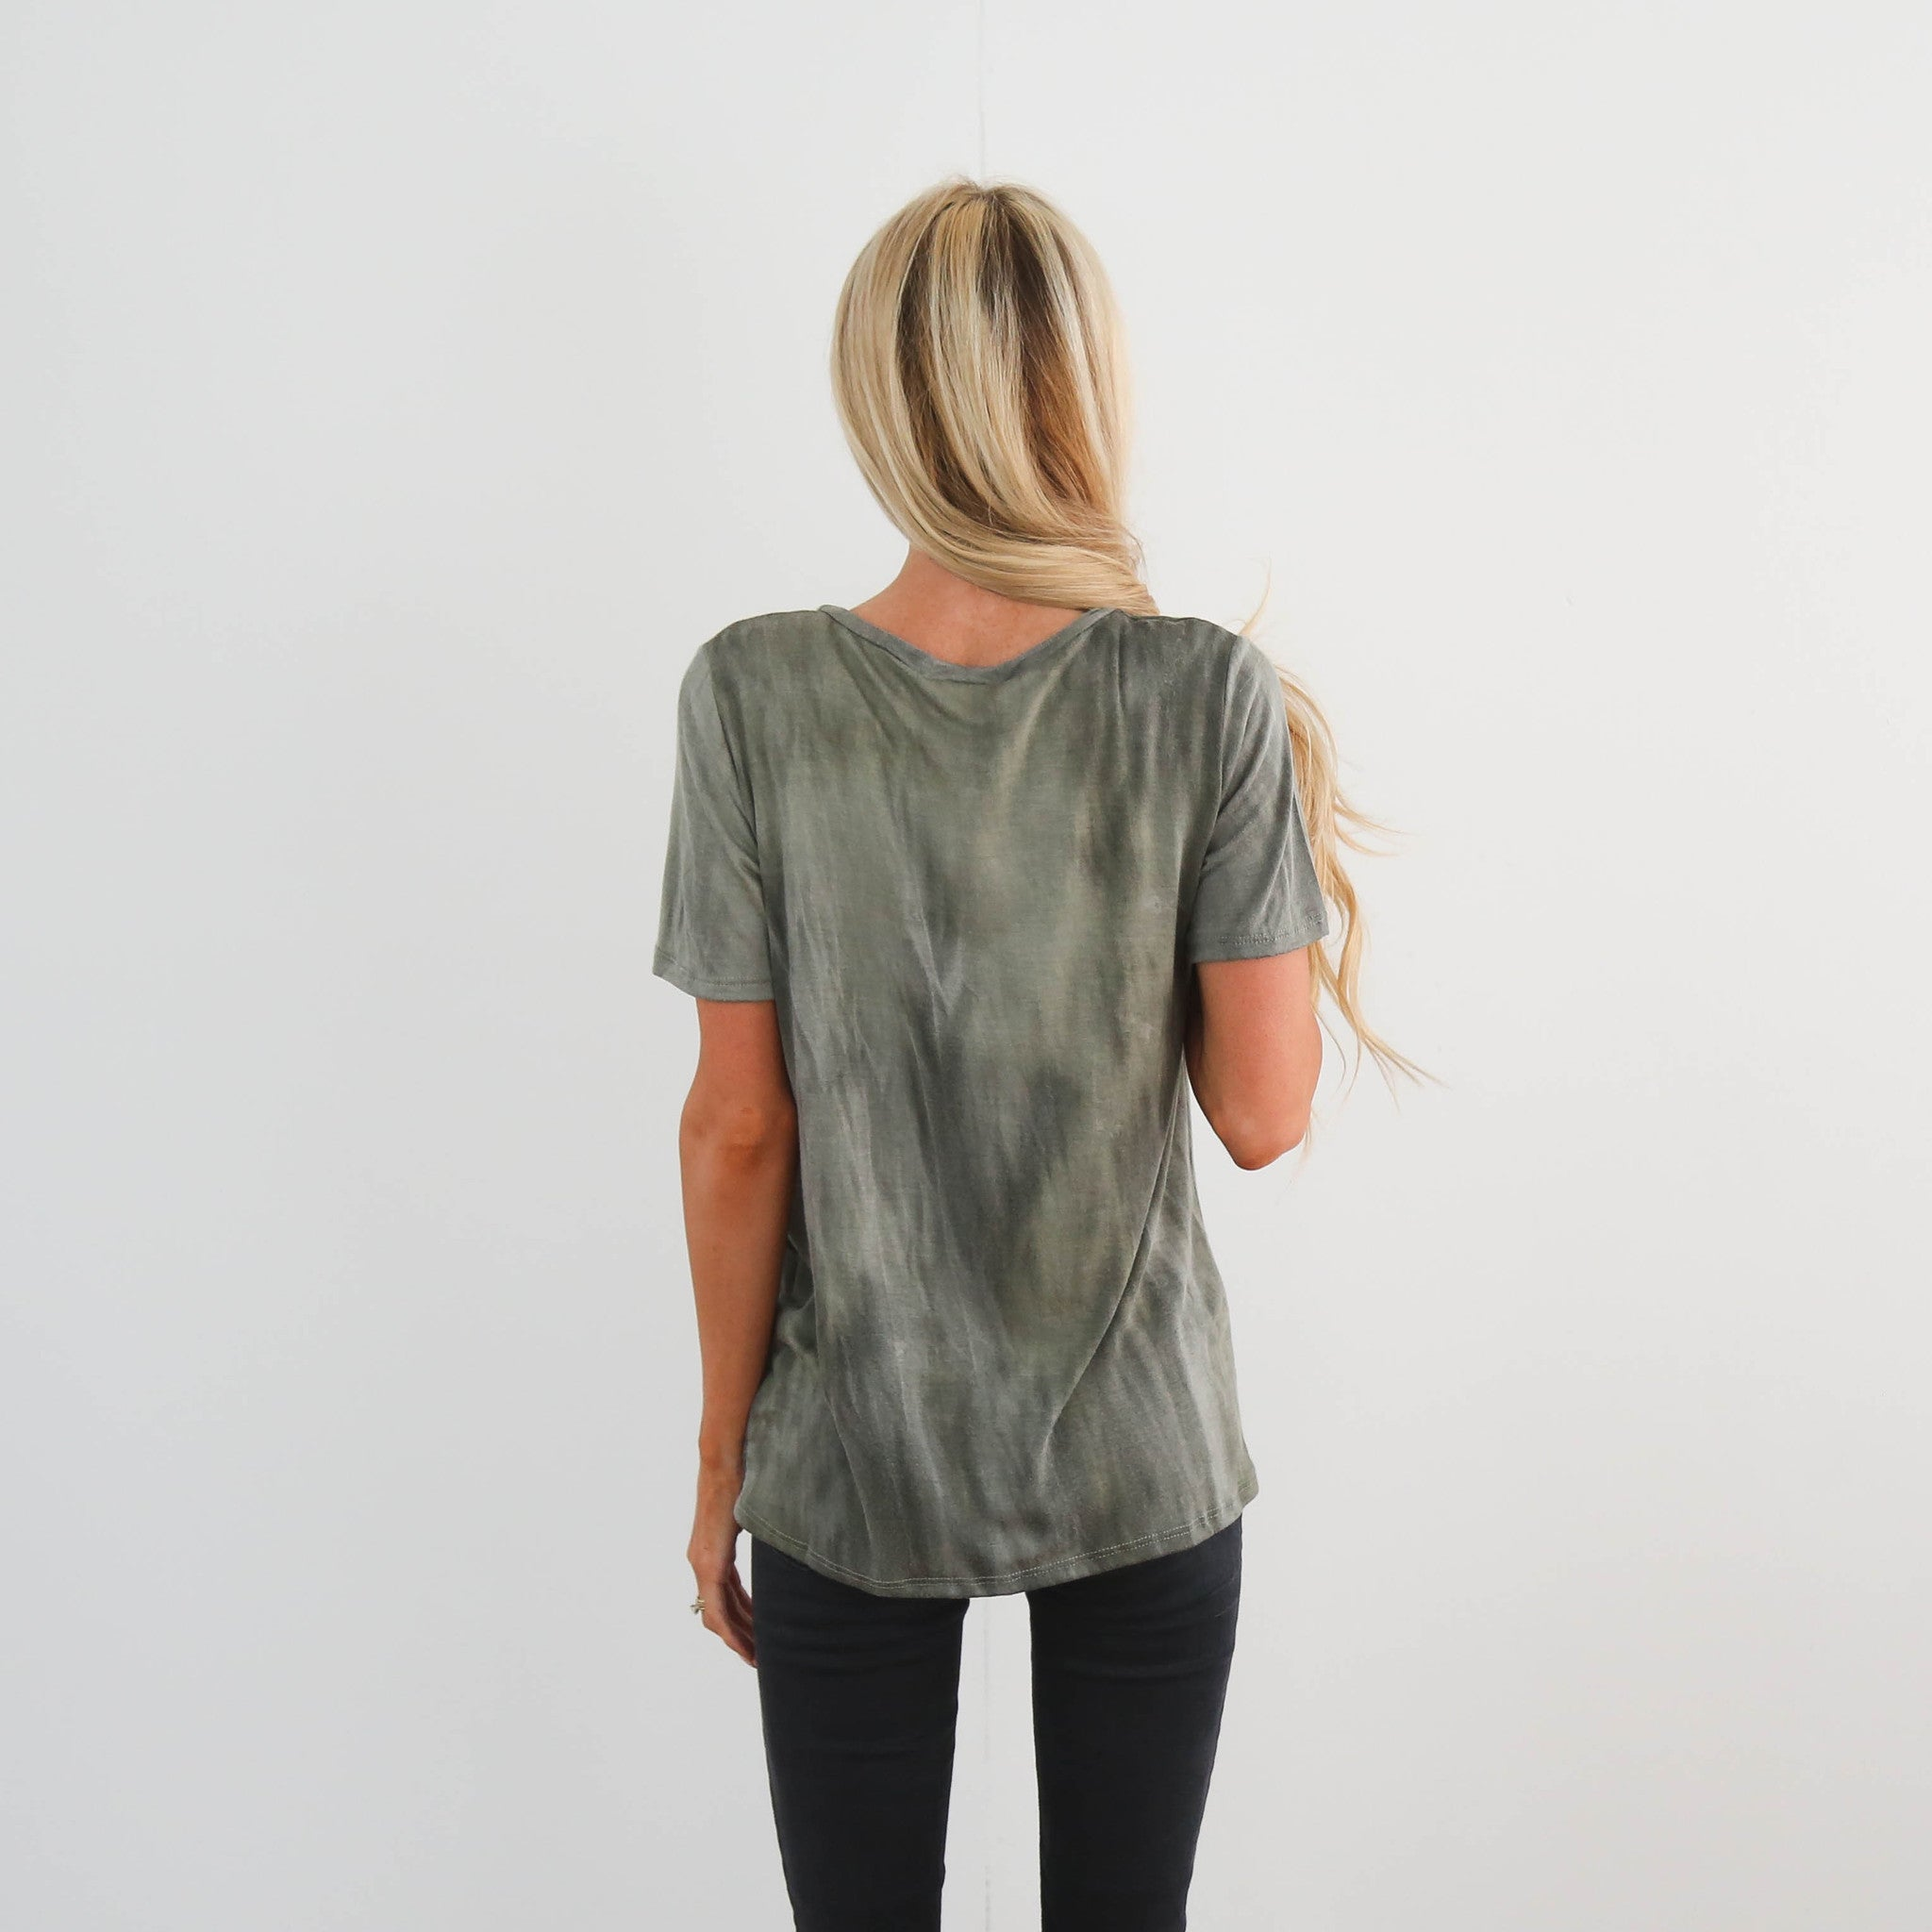 Olive Knot Tee